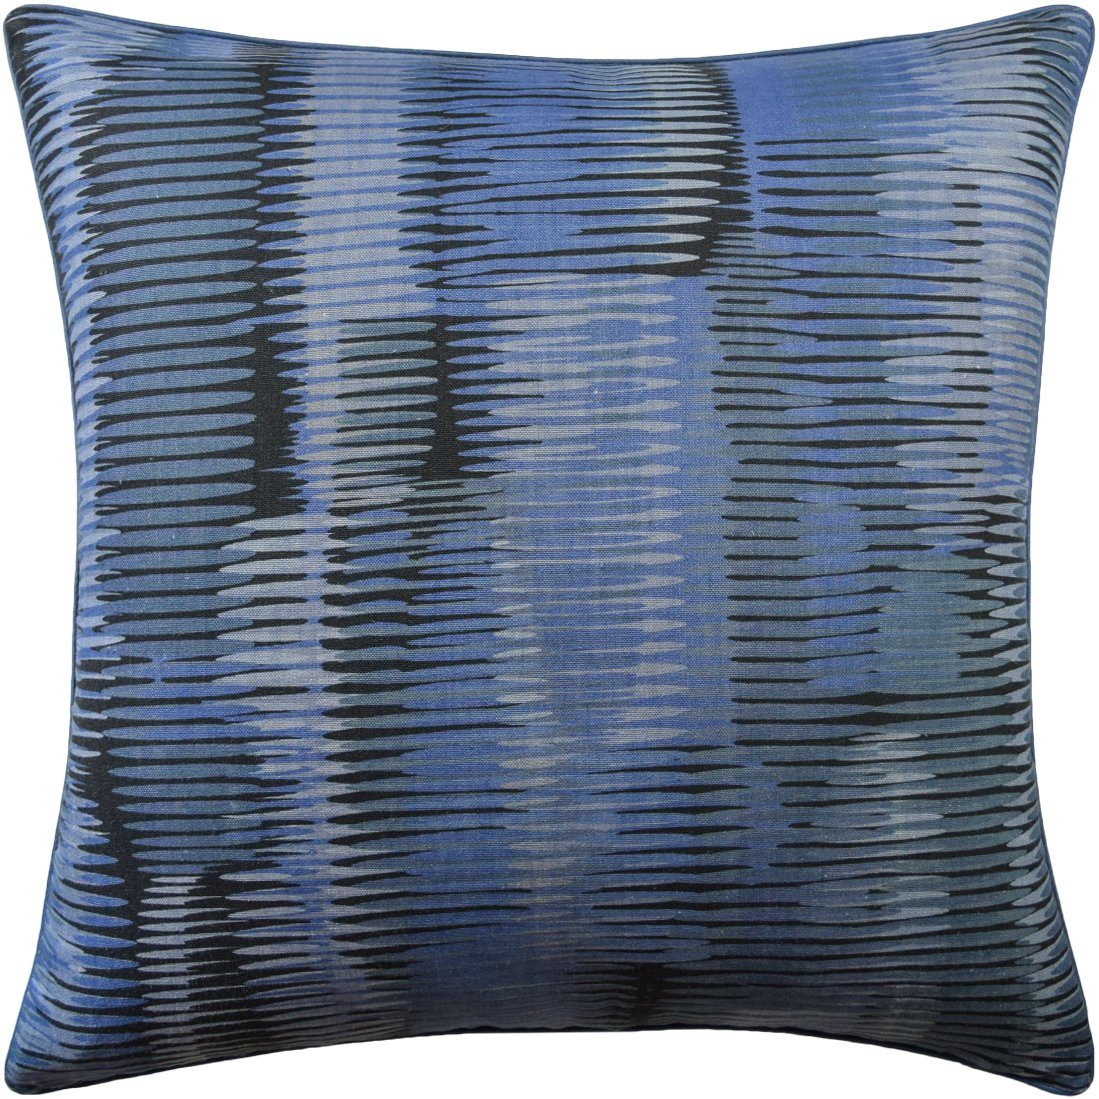 Alcantara Navy Pillow by Ryan Studio